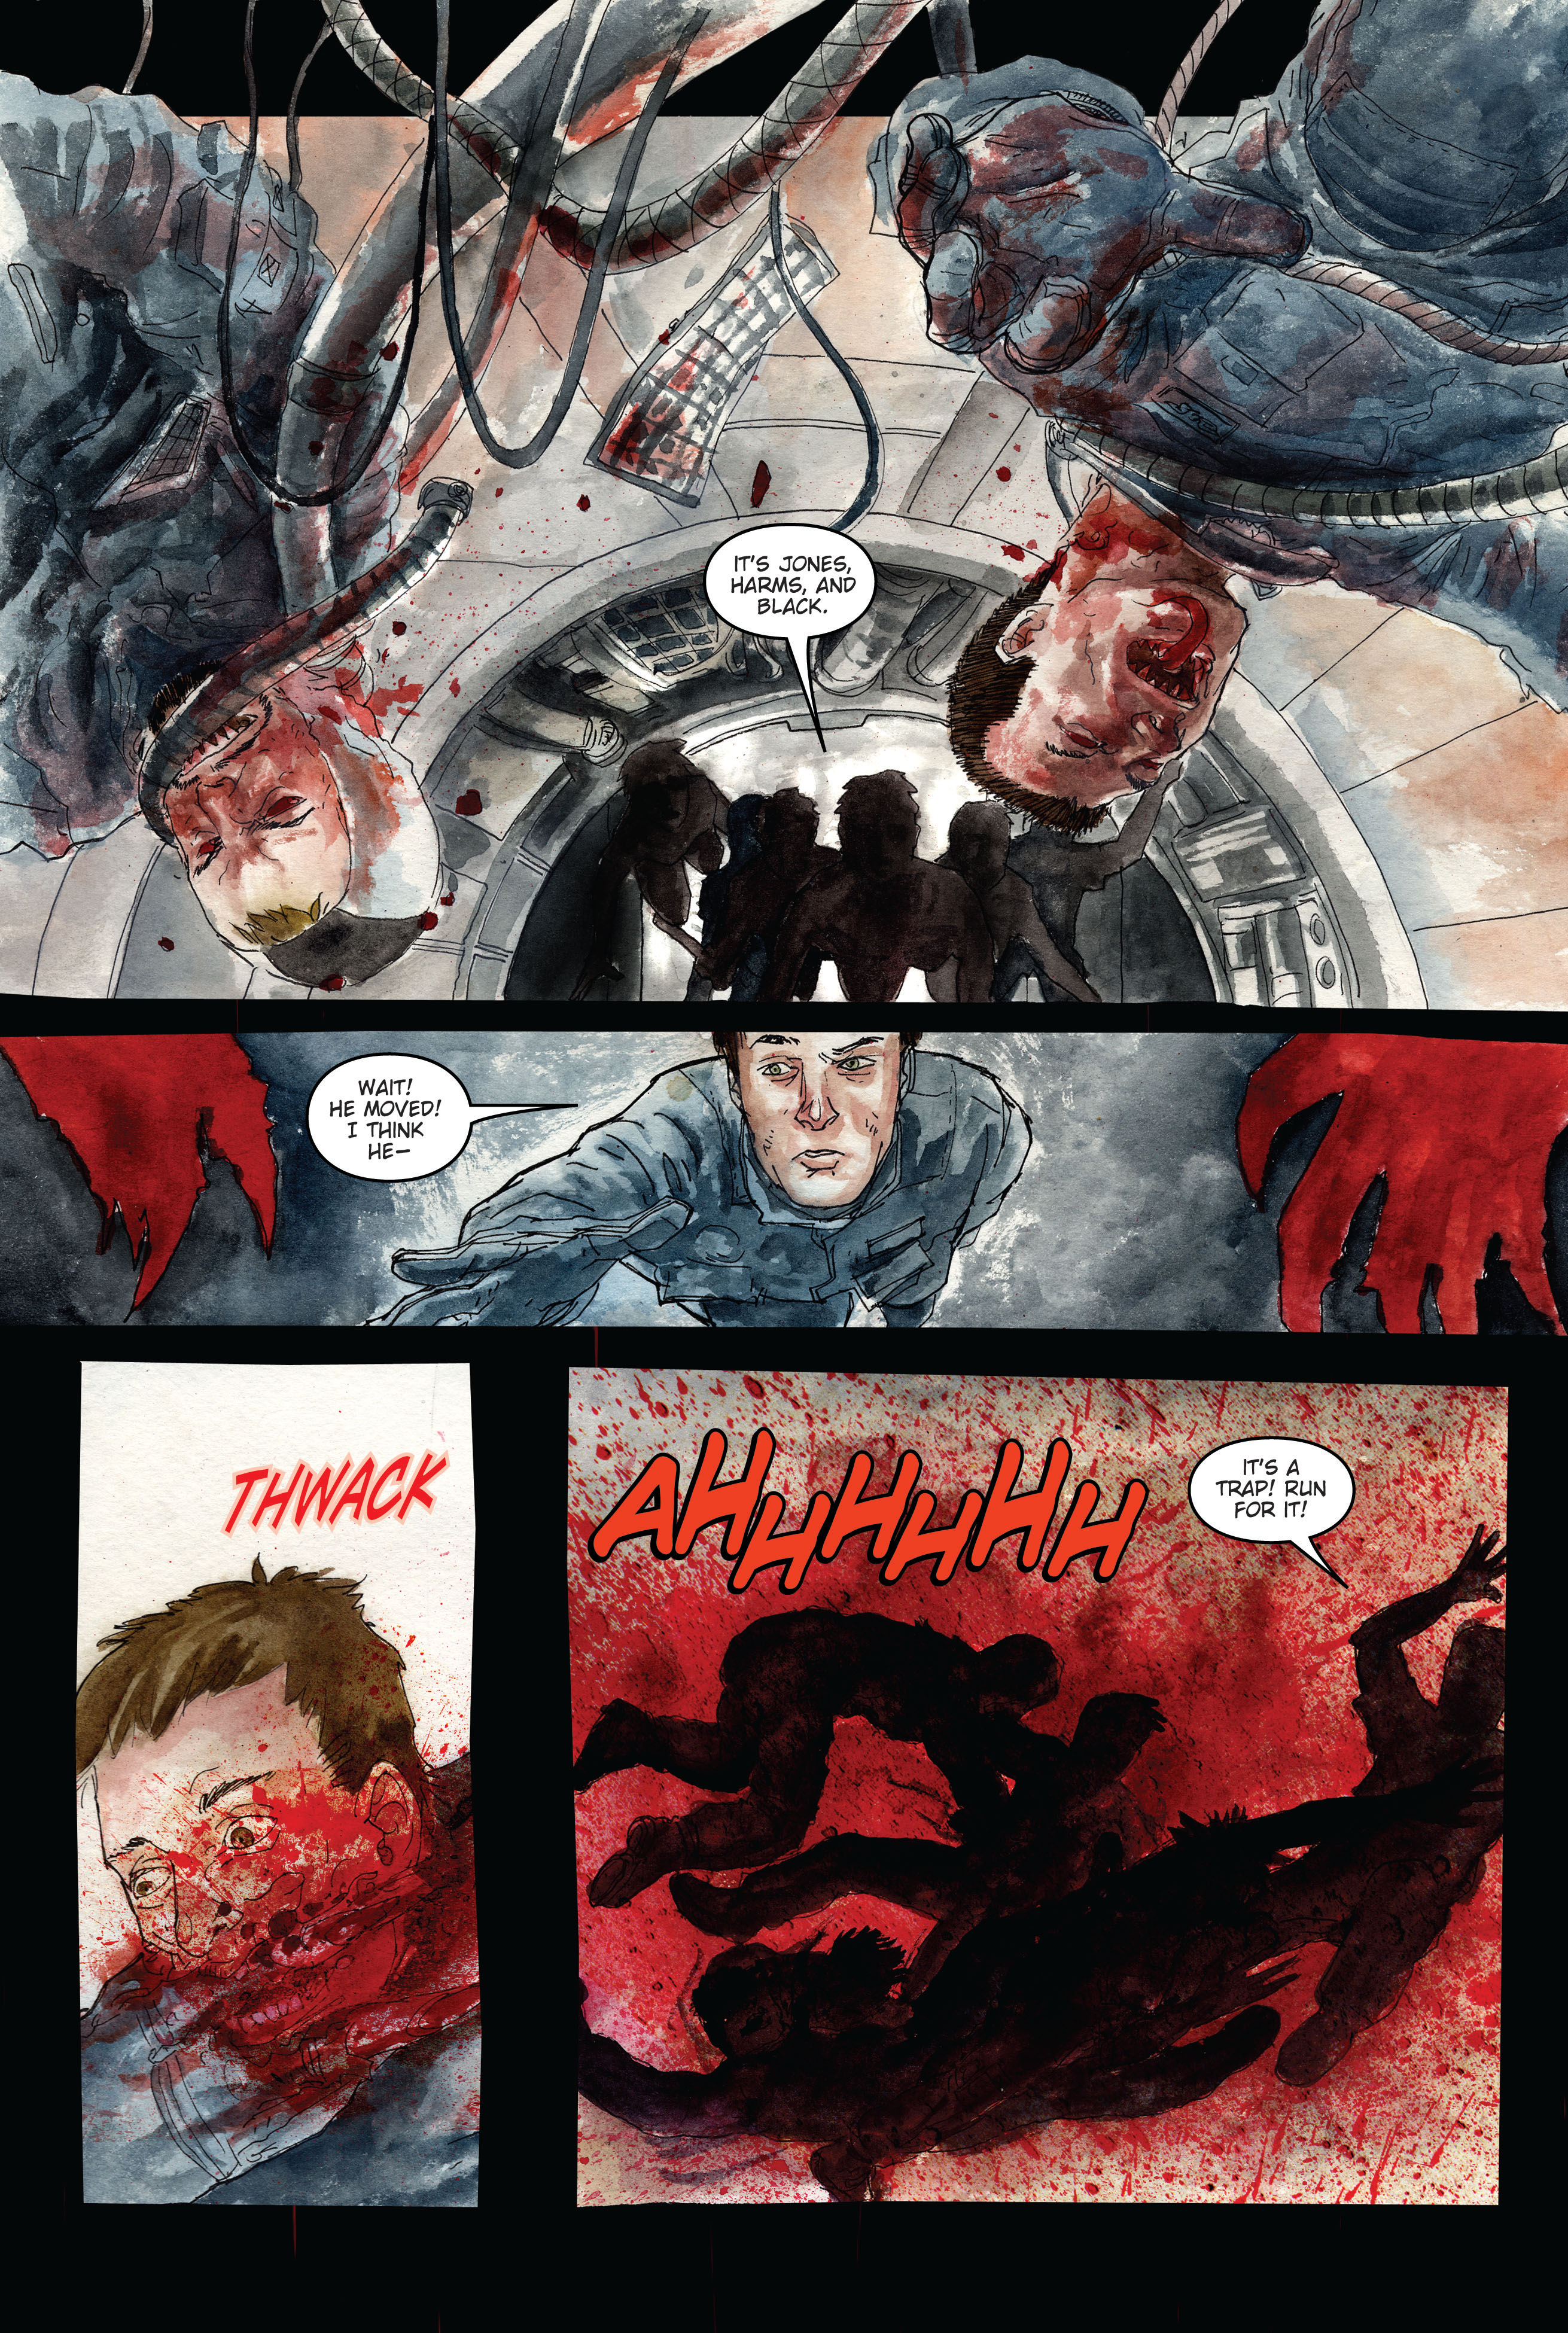 30 Days of Night: Dead Space 3 Page 6